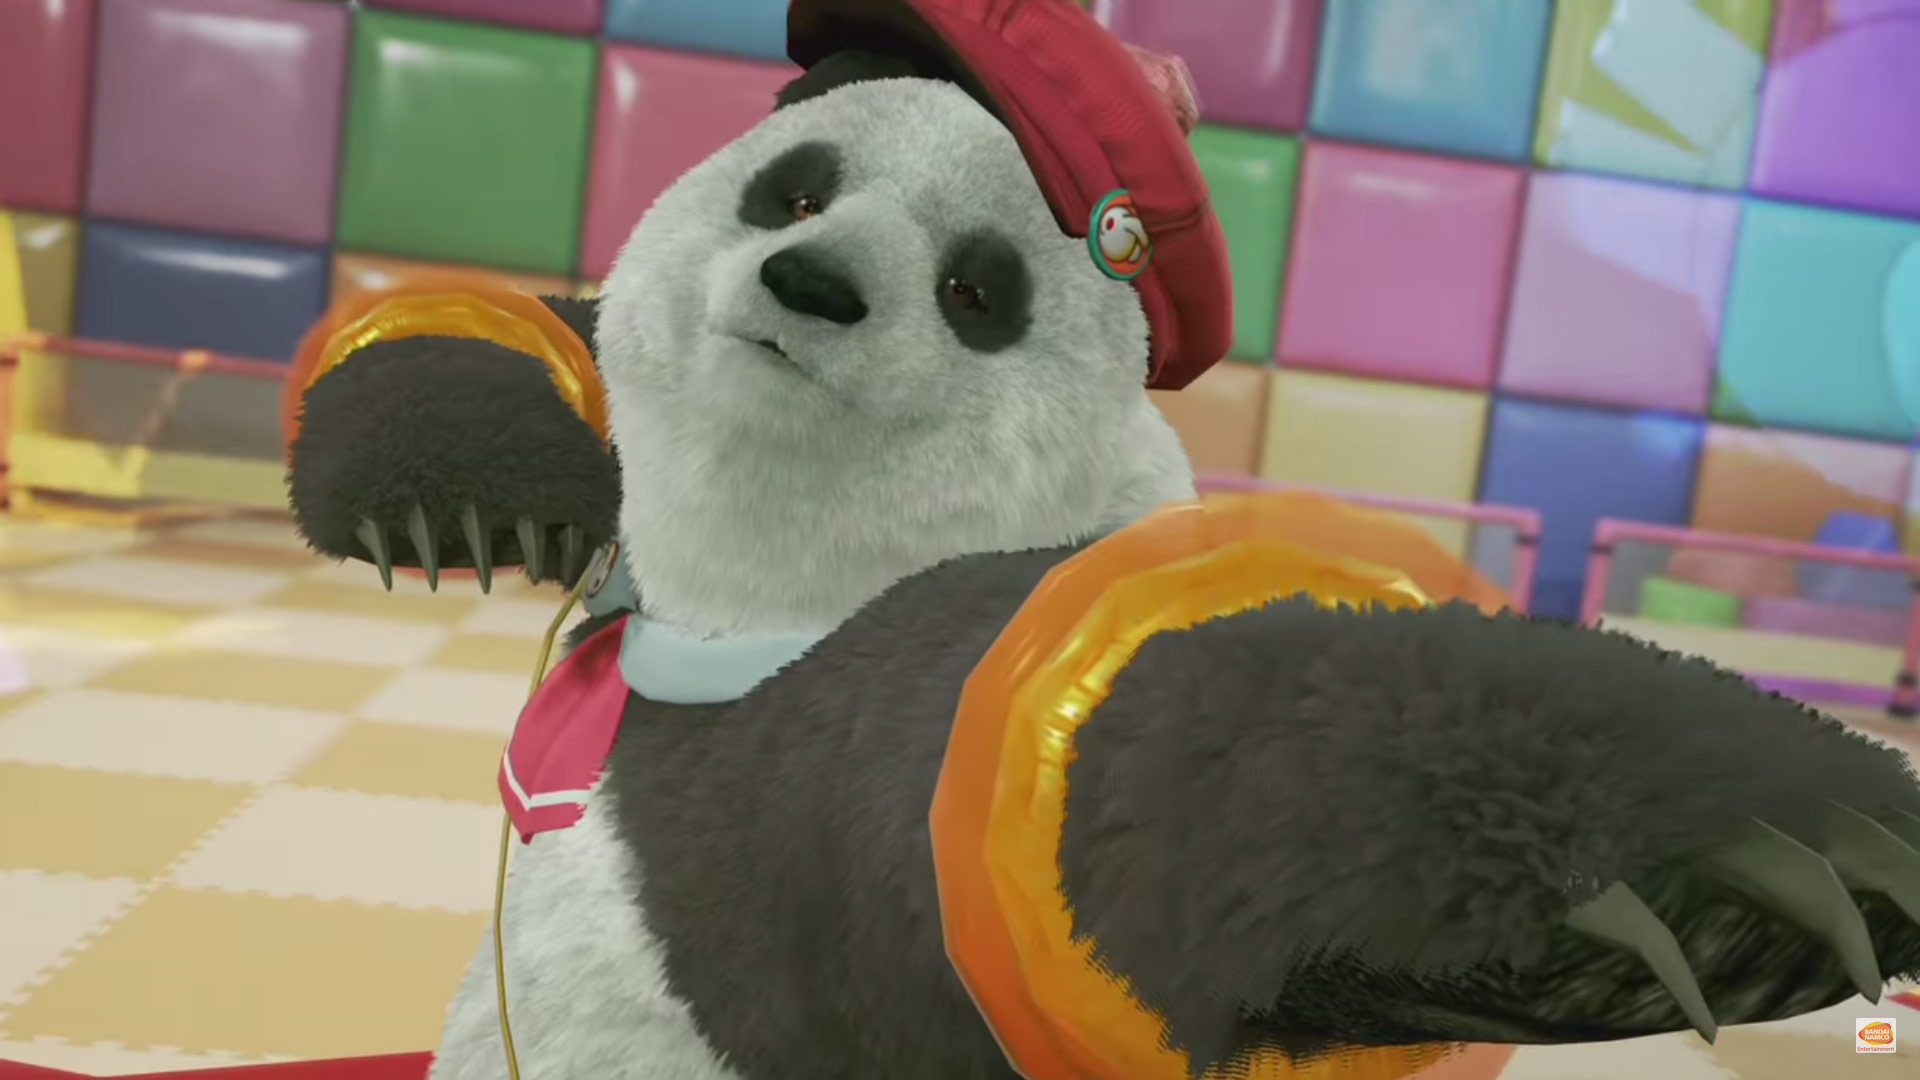 Tekken 7: Fated Retribution Kuma & Panda Reveal 4 out of 6 image gallery